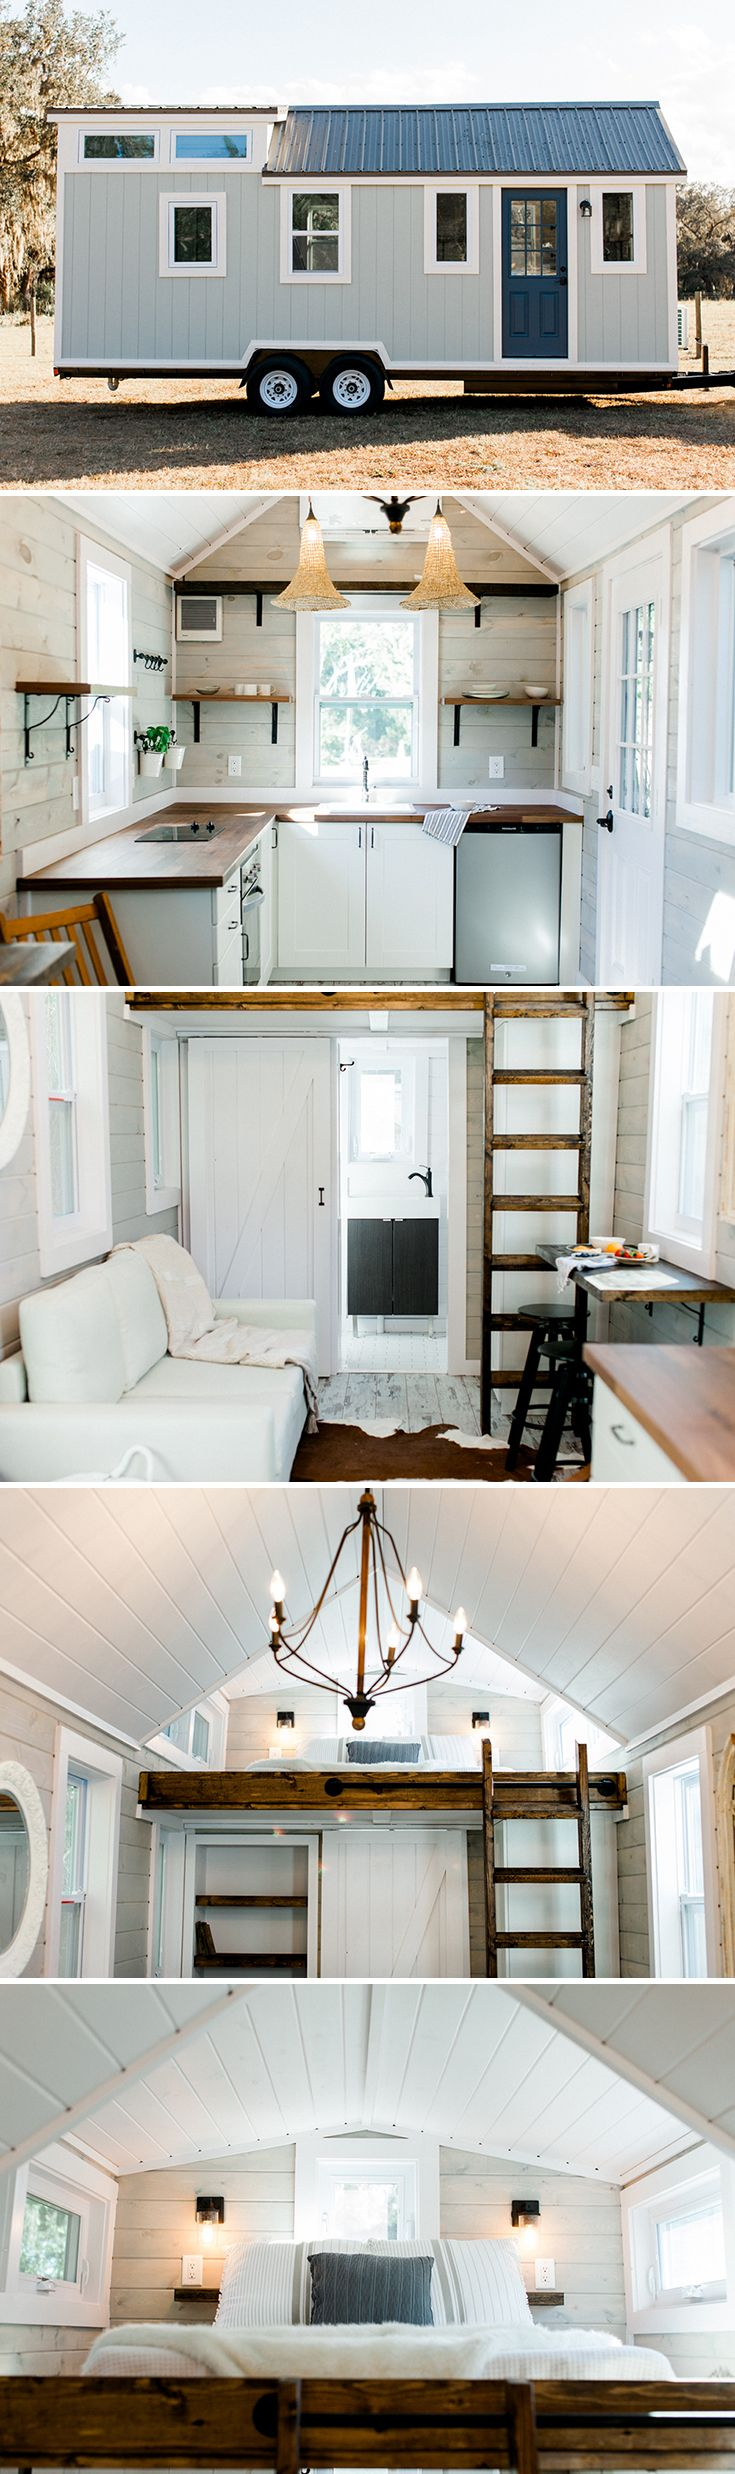 Best 25 tiny house trailer ideas on pinterest micro for Small house interior